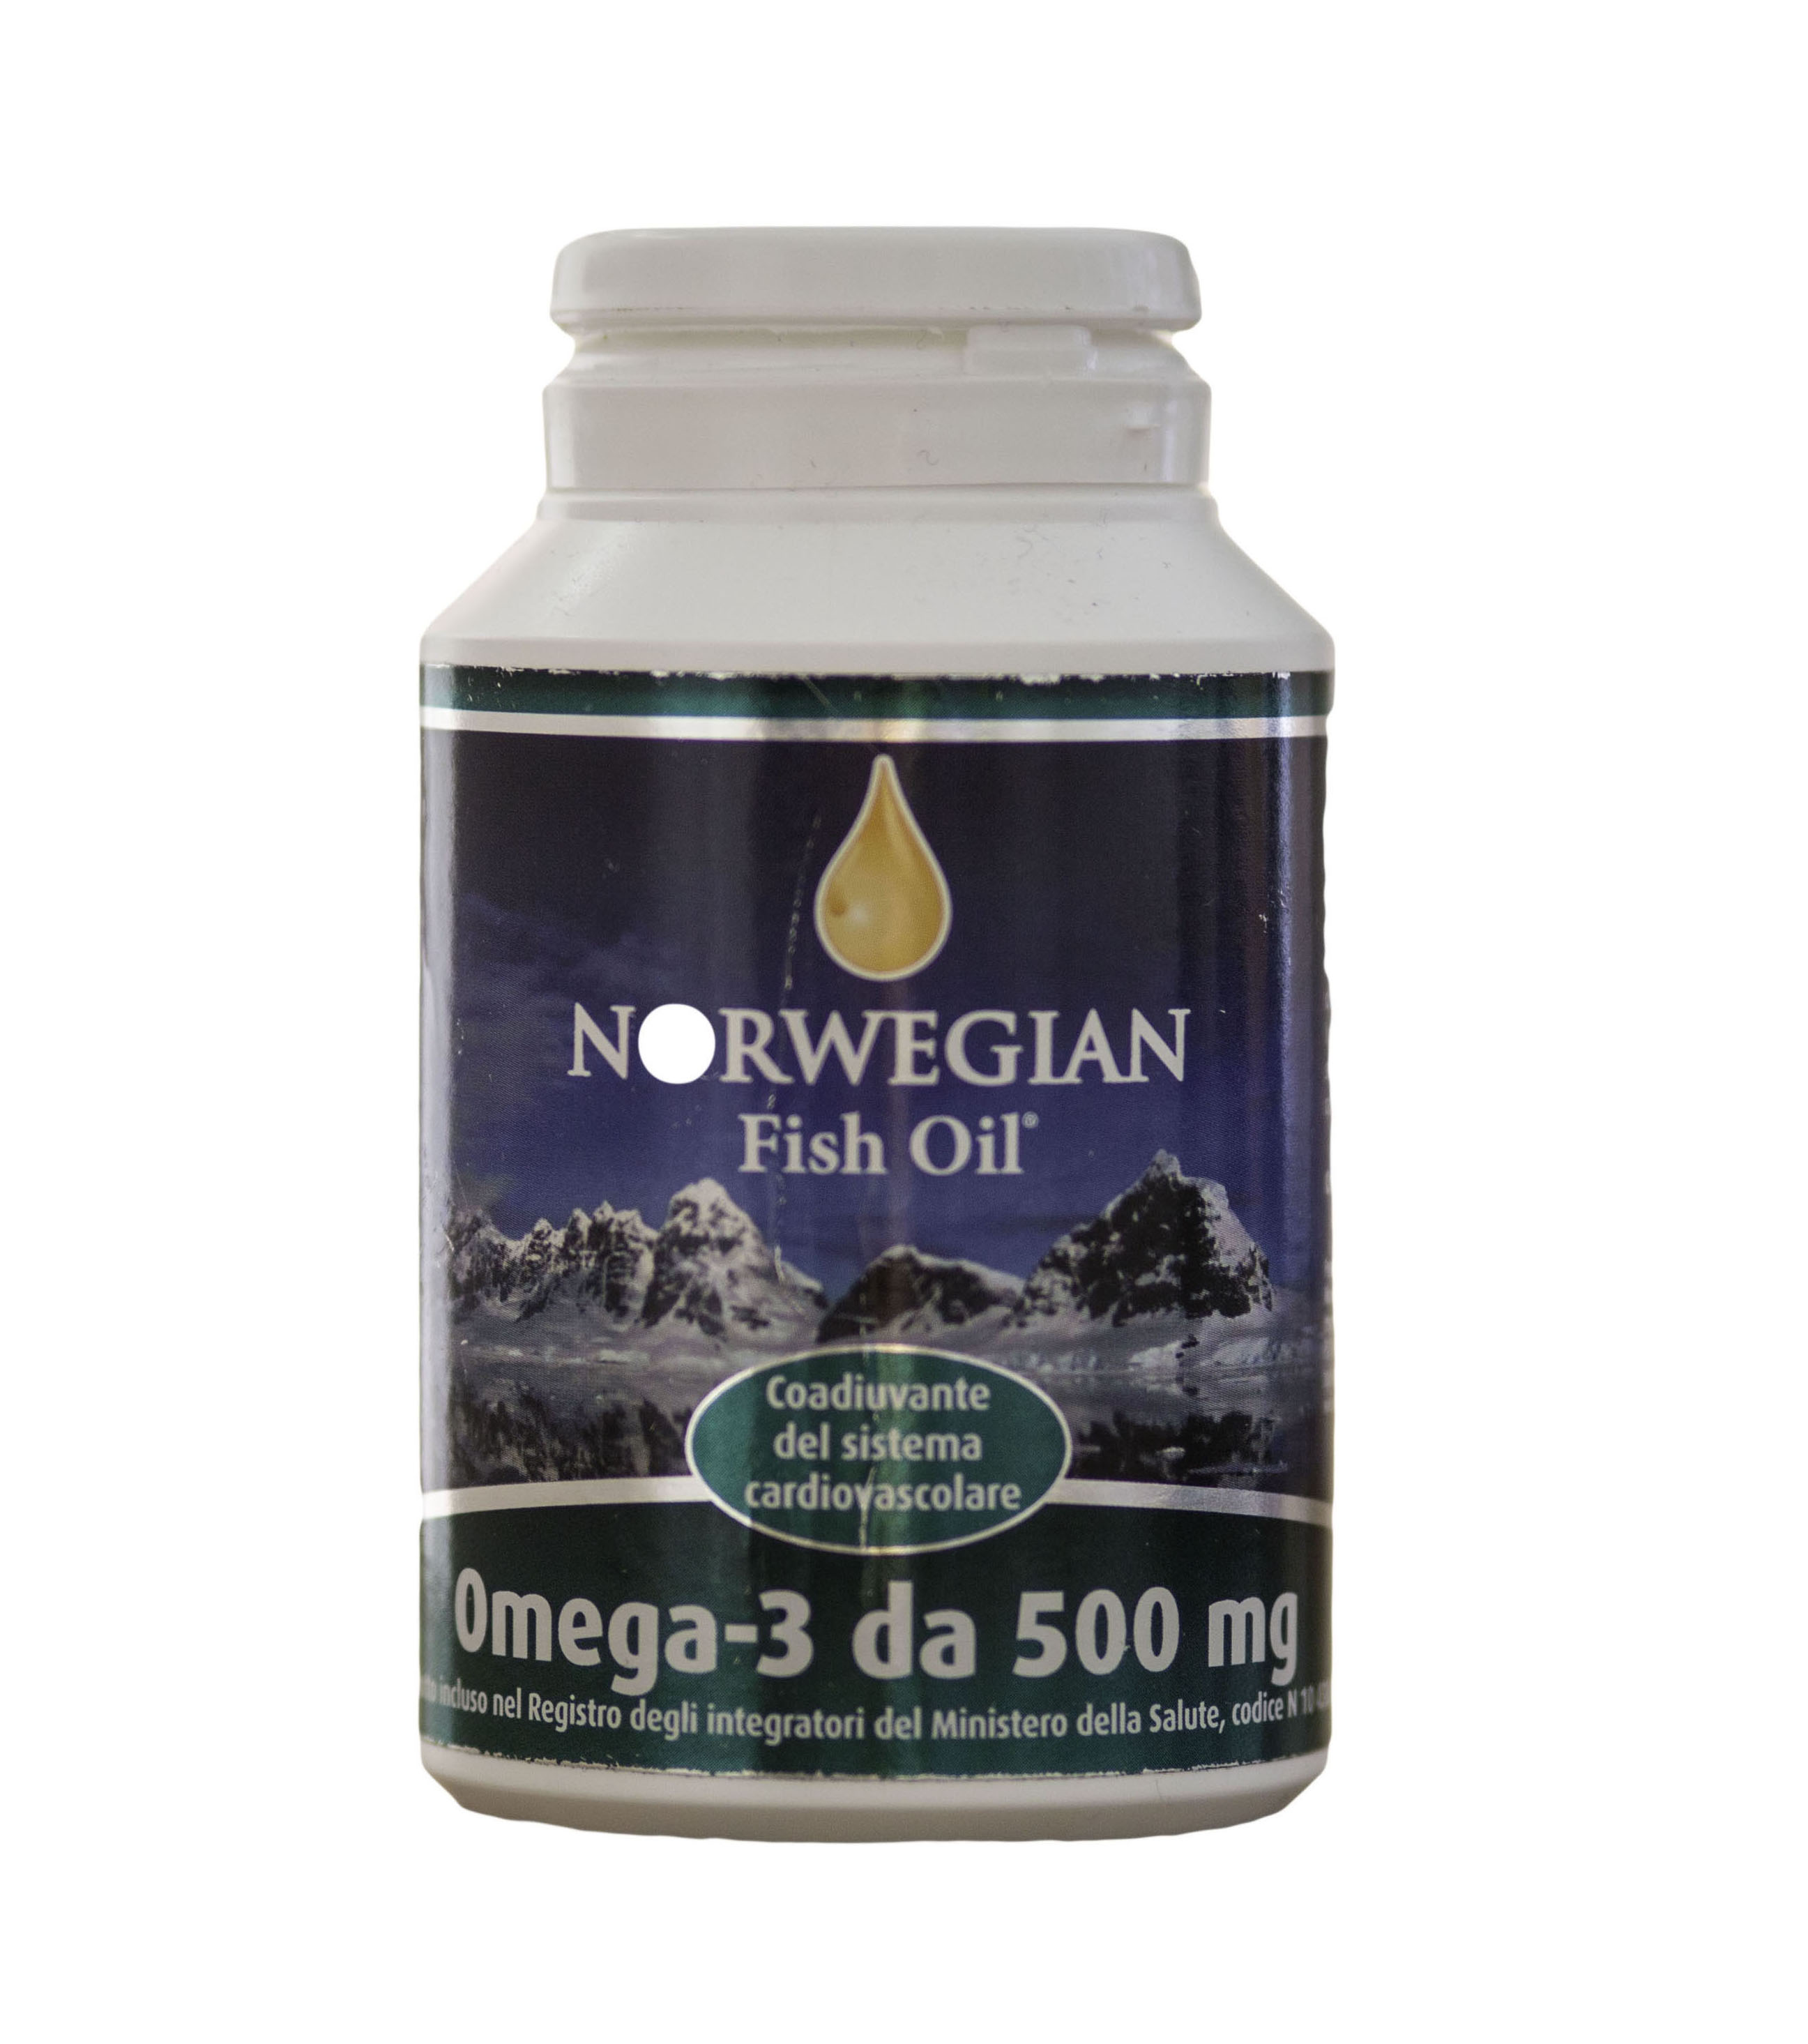 Norwegian Fish Oil Omega 3 Capsule 500 Mg